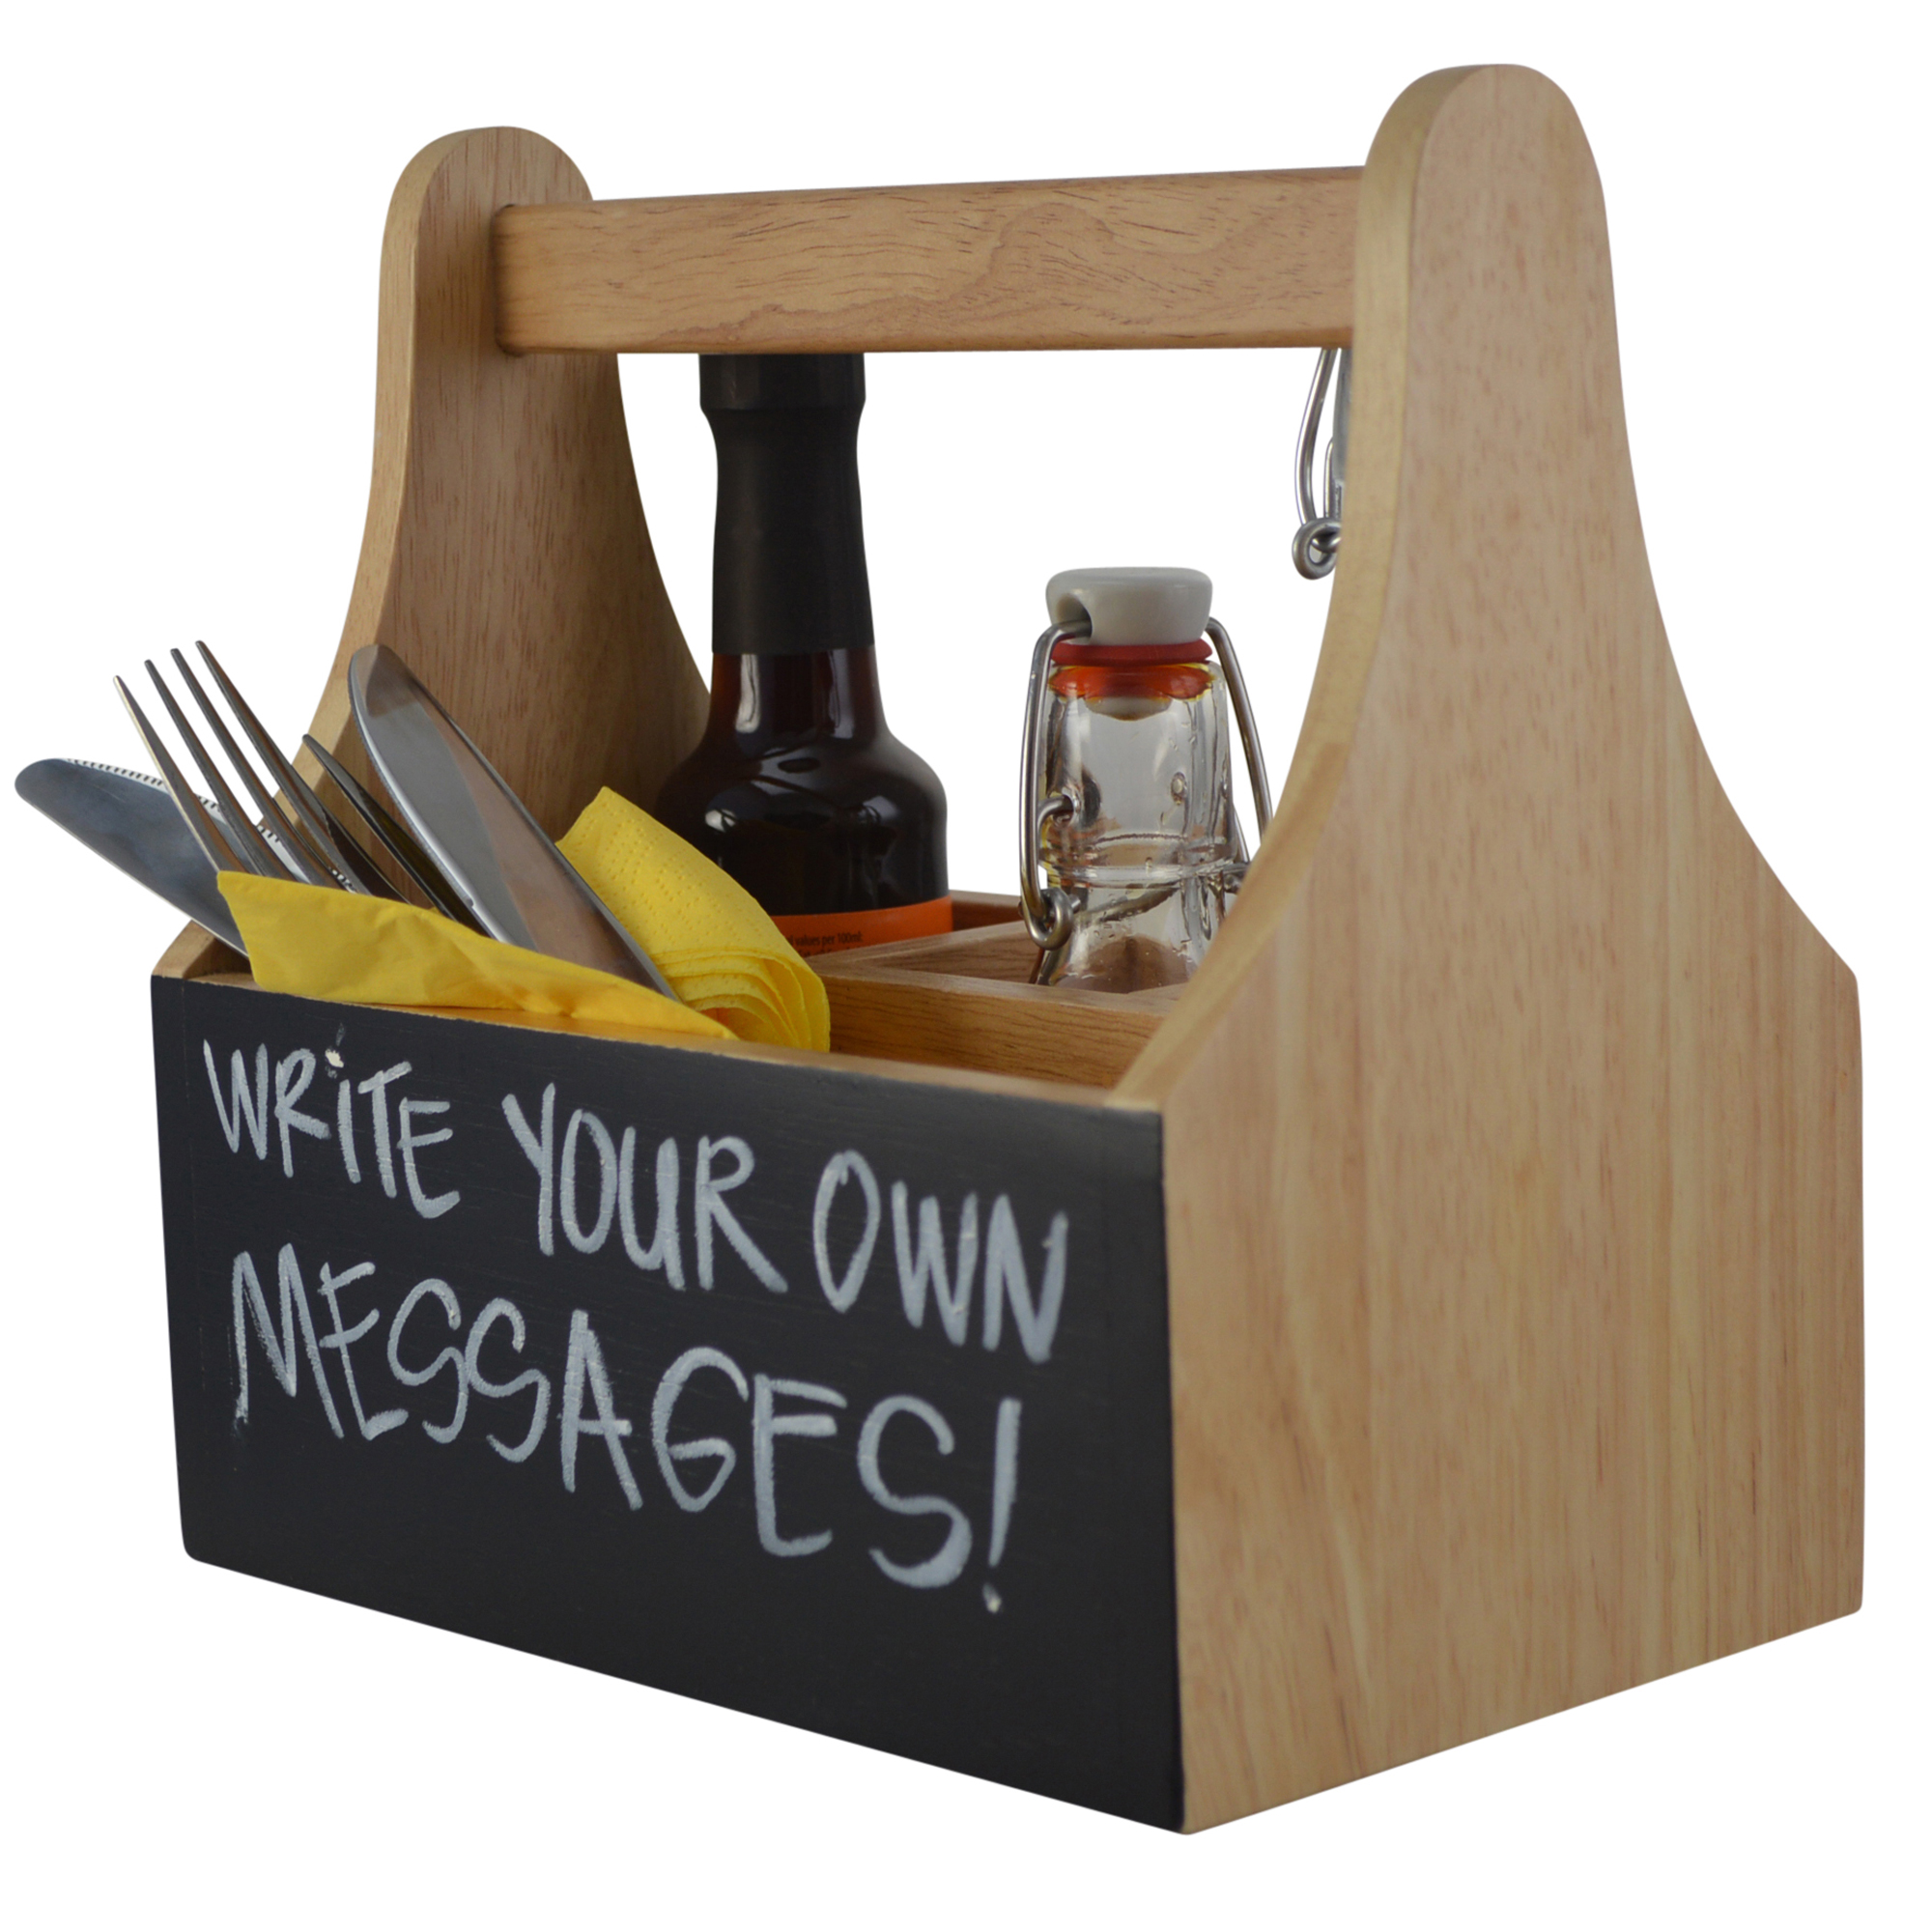 Incredible Wooden Table Caddy With Chalkboard Download Free Architecture Designs Scobabritishbridgeorg